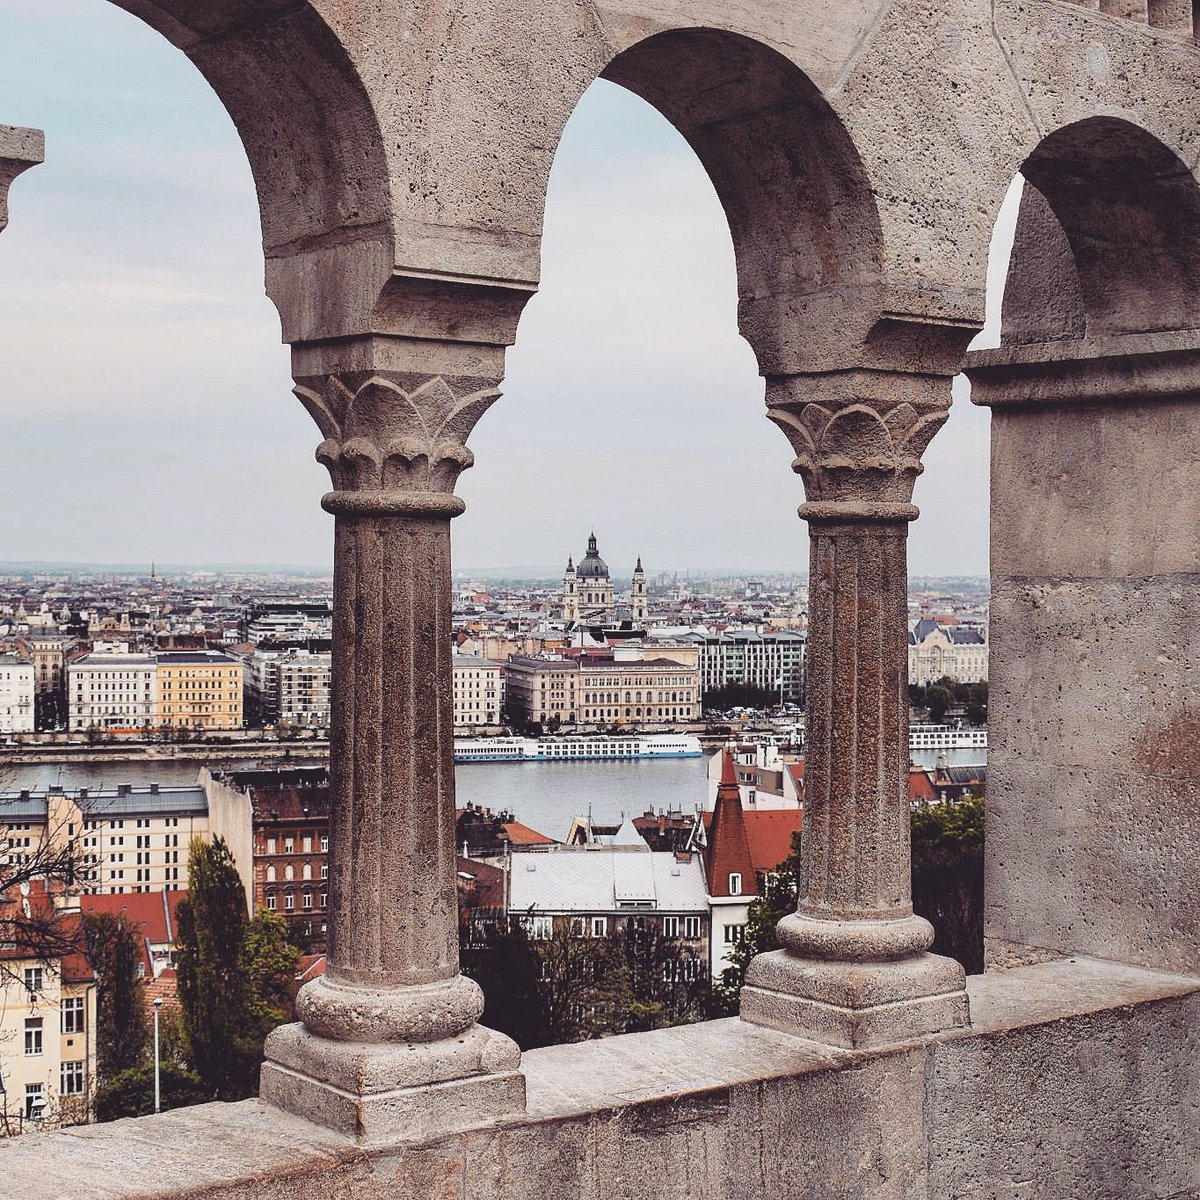 Amazing view from the Fisherman&#39;s Bastion in #Budapest, #Hungary / #travel #travelblog #travelblogger #traveling #exploring RT<br>http://pic.twitter.com/4f2TTKGoNp